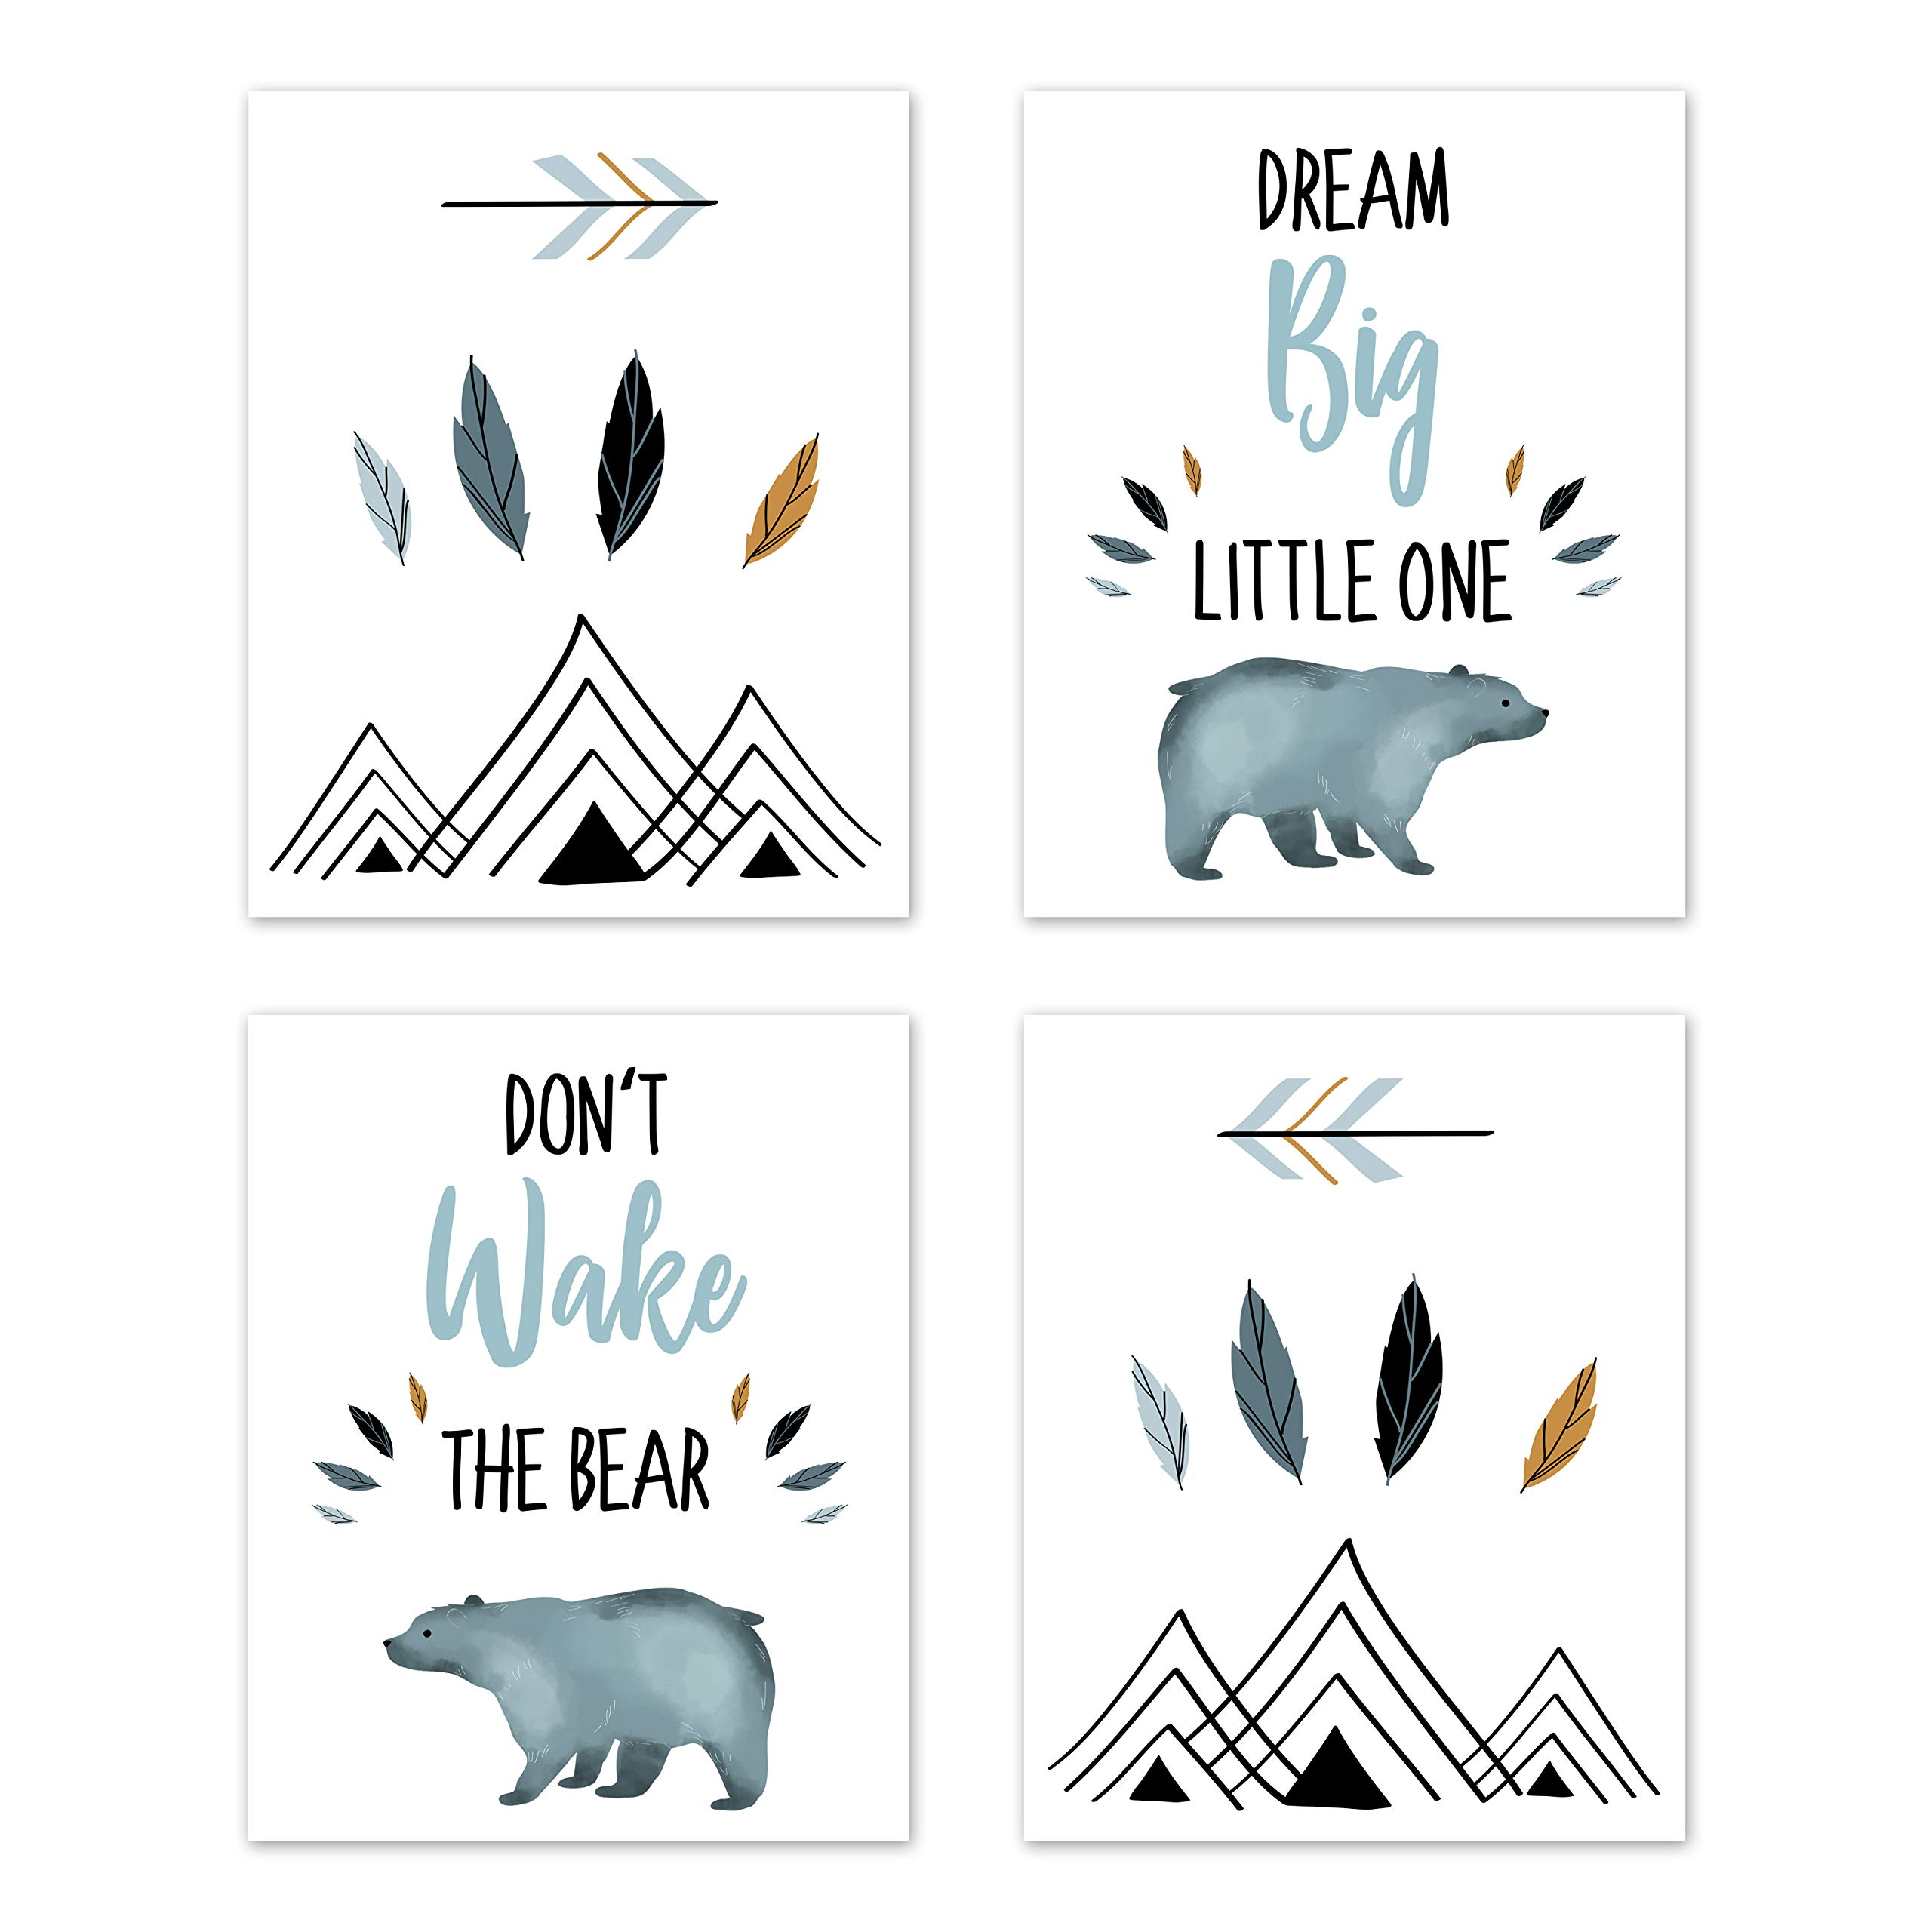 Sweet Jojo Designs Slate Blue and White Wall Art Prints Room Decor for Baby, Nursery, and Kids for Bear Mountain Watercolor Collection - Set of 4 - Dream Big, Don't Wake The Bear by Sweet Jojo Designs